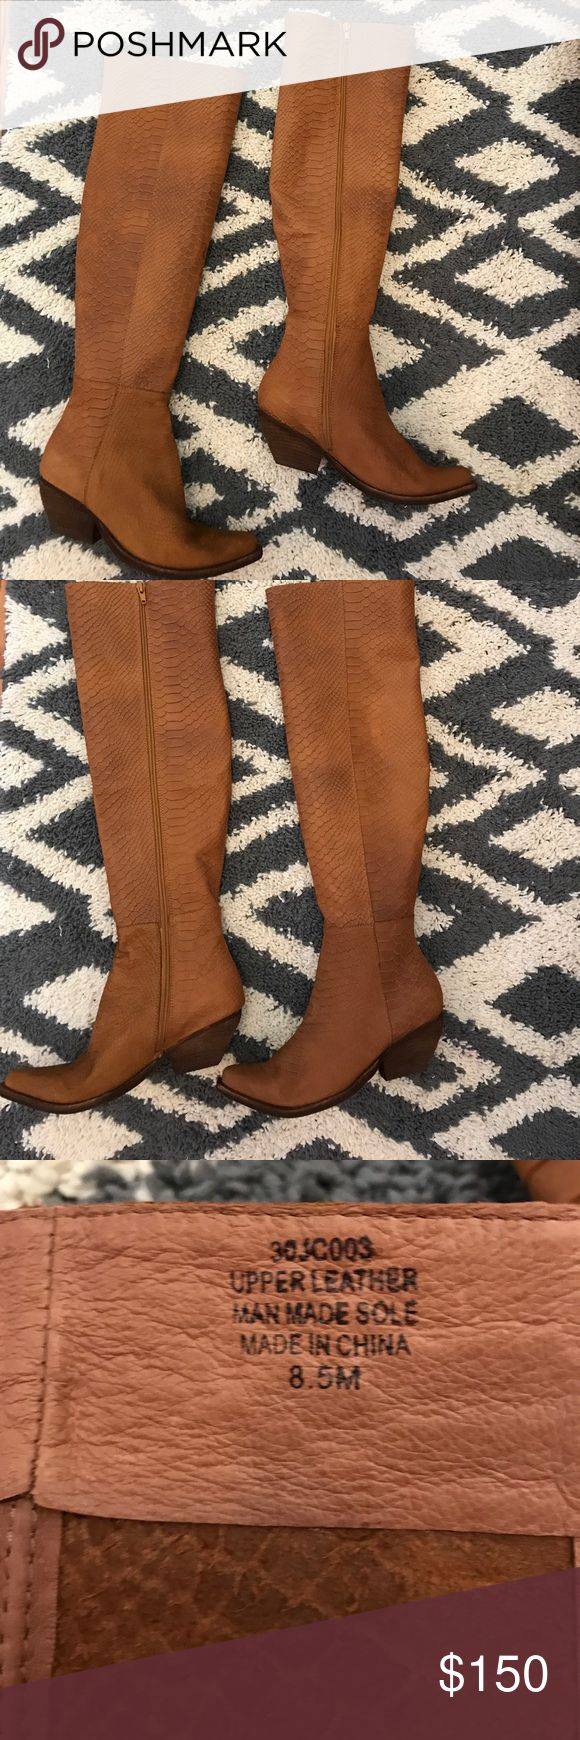 New Jeffrey Campbell cowboy boots BRAND NEW JEFFREY CAMPBELL LEATHER COWBOY BOOTS. Size 8.5. These are beautiful and super comfortable. I have them in another color and just don't need two pairs. Paid $389 Jeffrey Campbell Shoes Over the Knee Boots